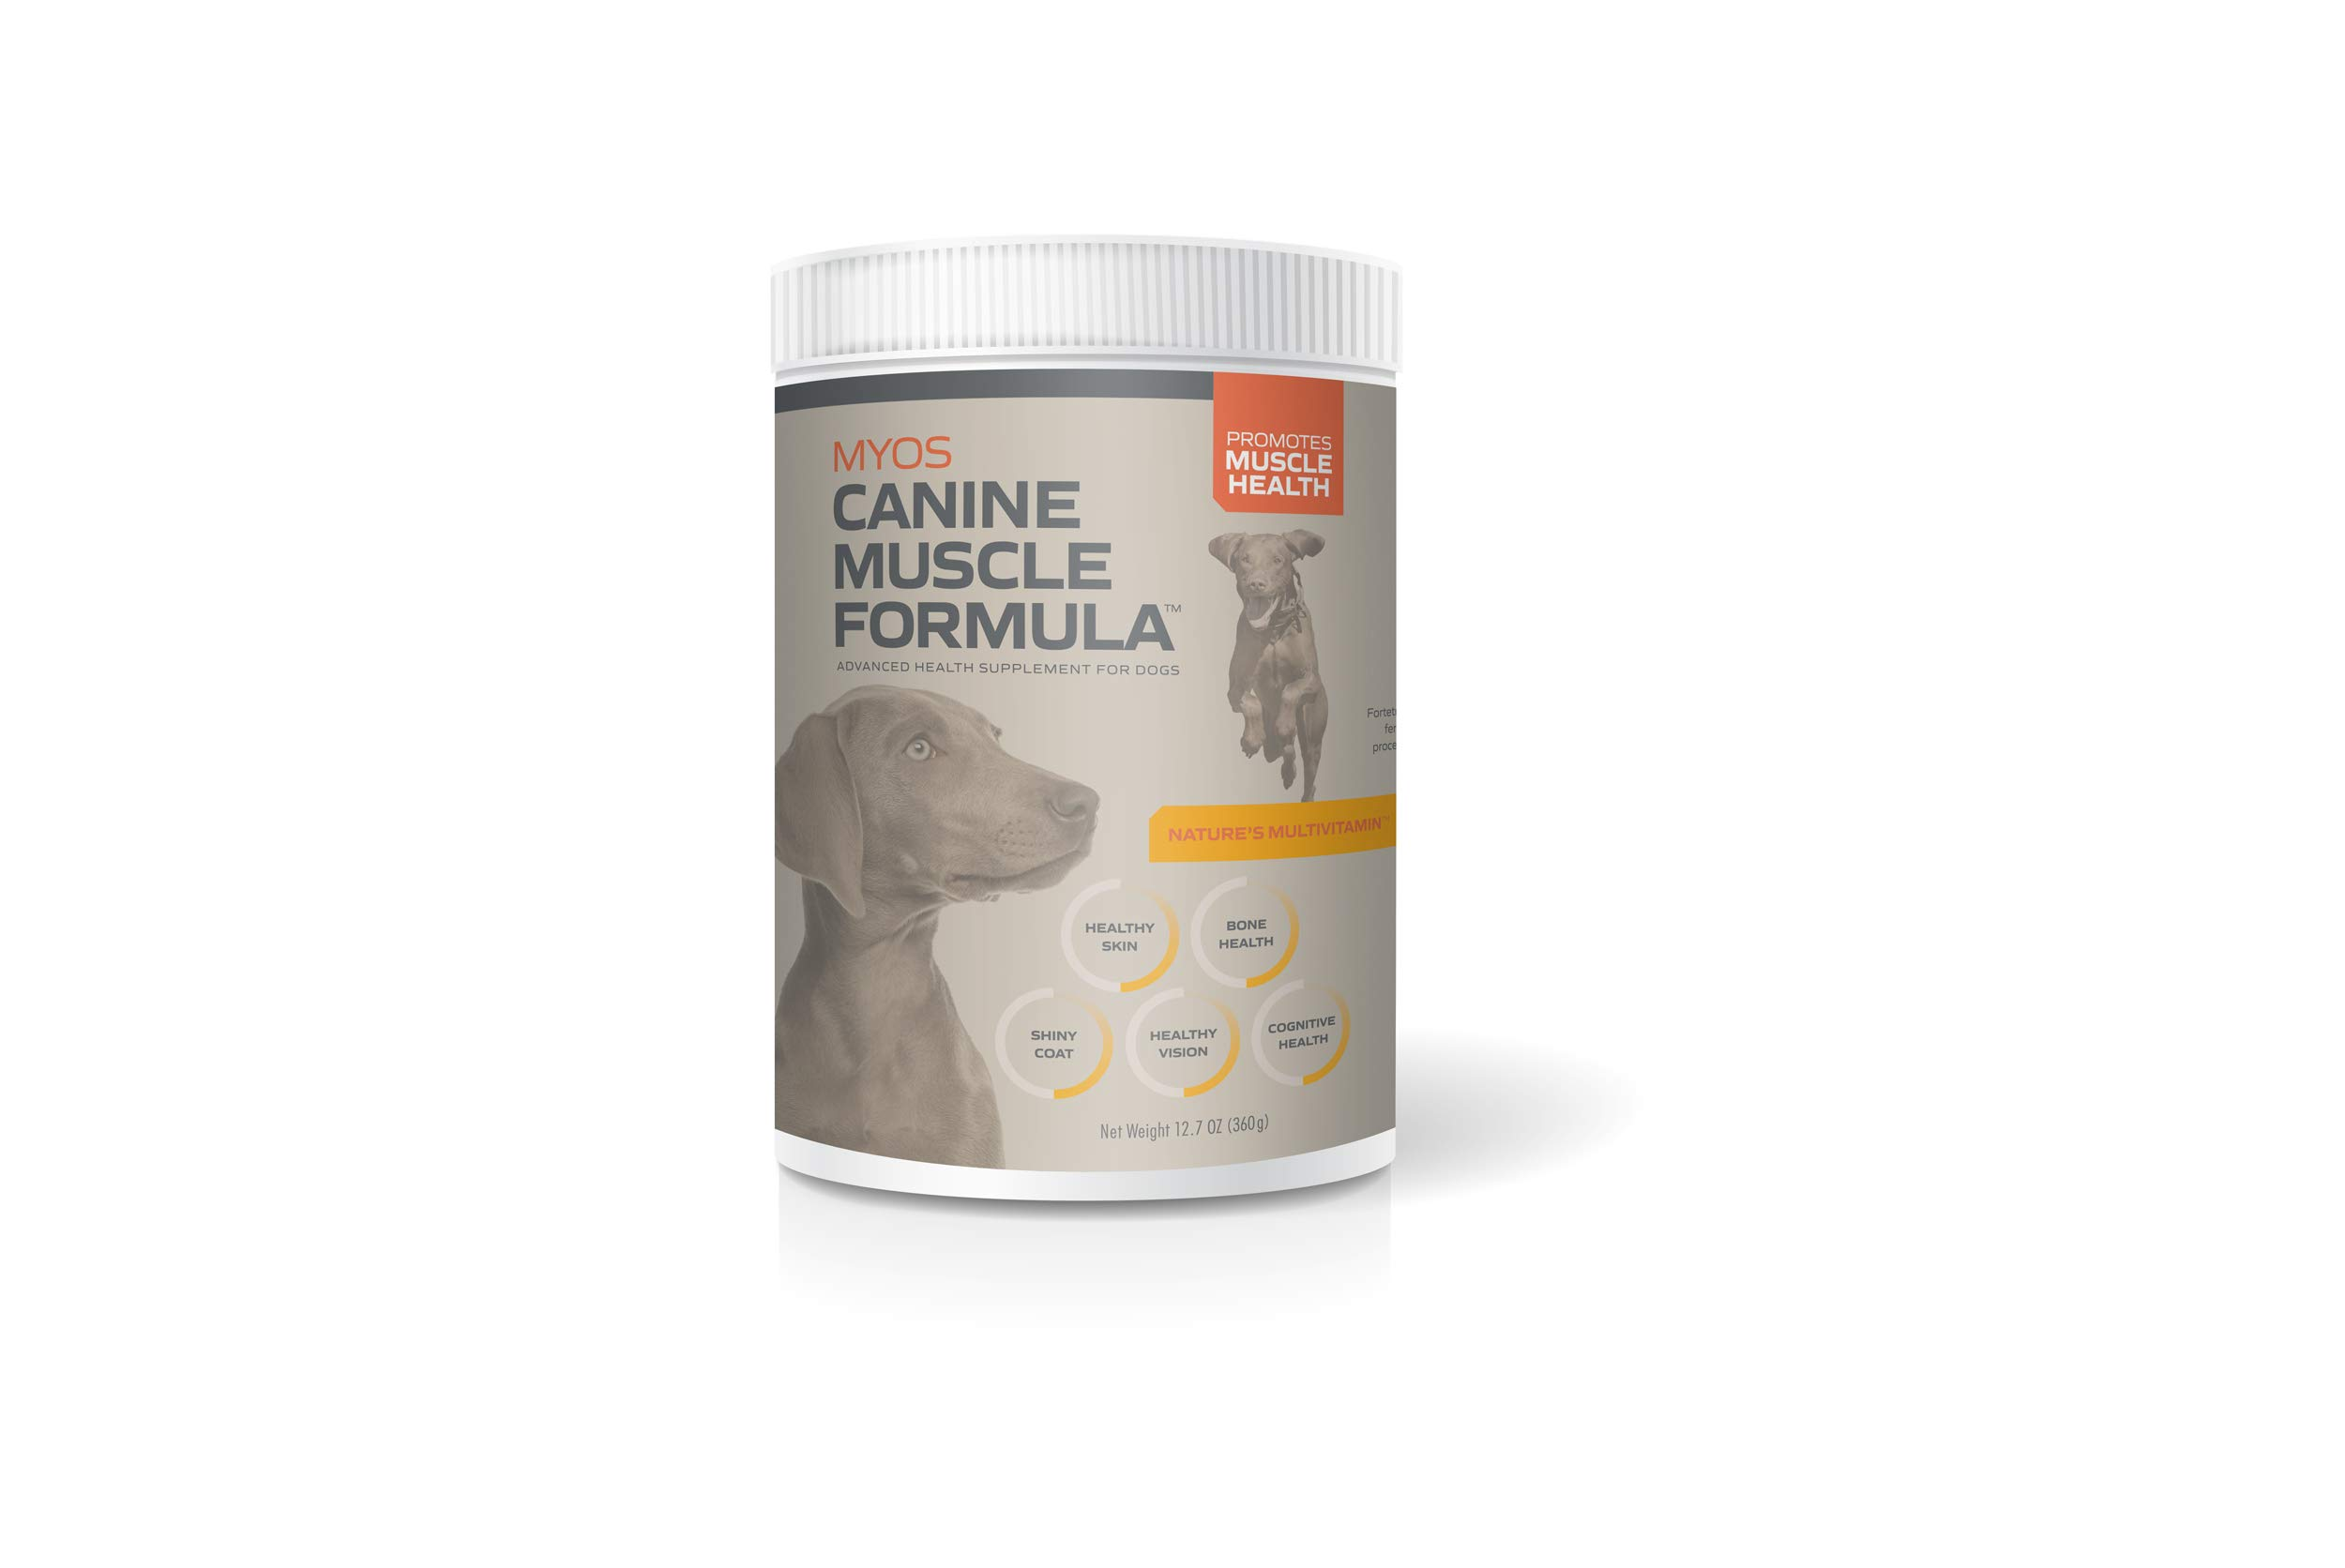 MYOS Canine Muscle Formula - Fertilized Egg Yolk Supplement for Dogs of All Ages to Build Muscle Mass Naturally - Daily Nutritional Remedy for Dog Health & Recovery Support by MYOS CANINE MUSCLE FORMULA